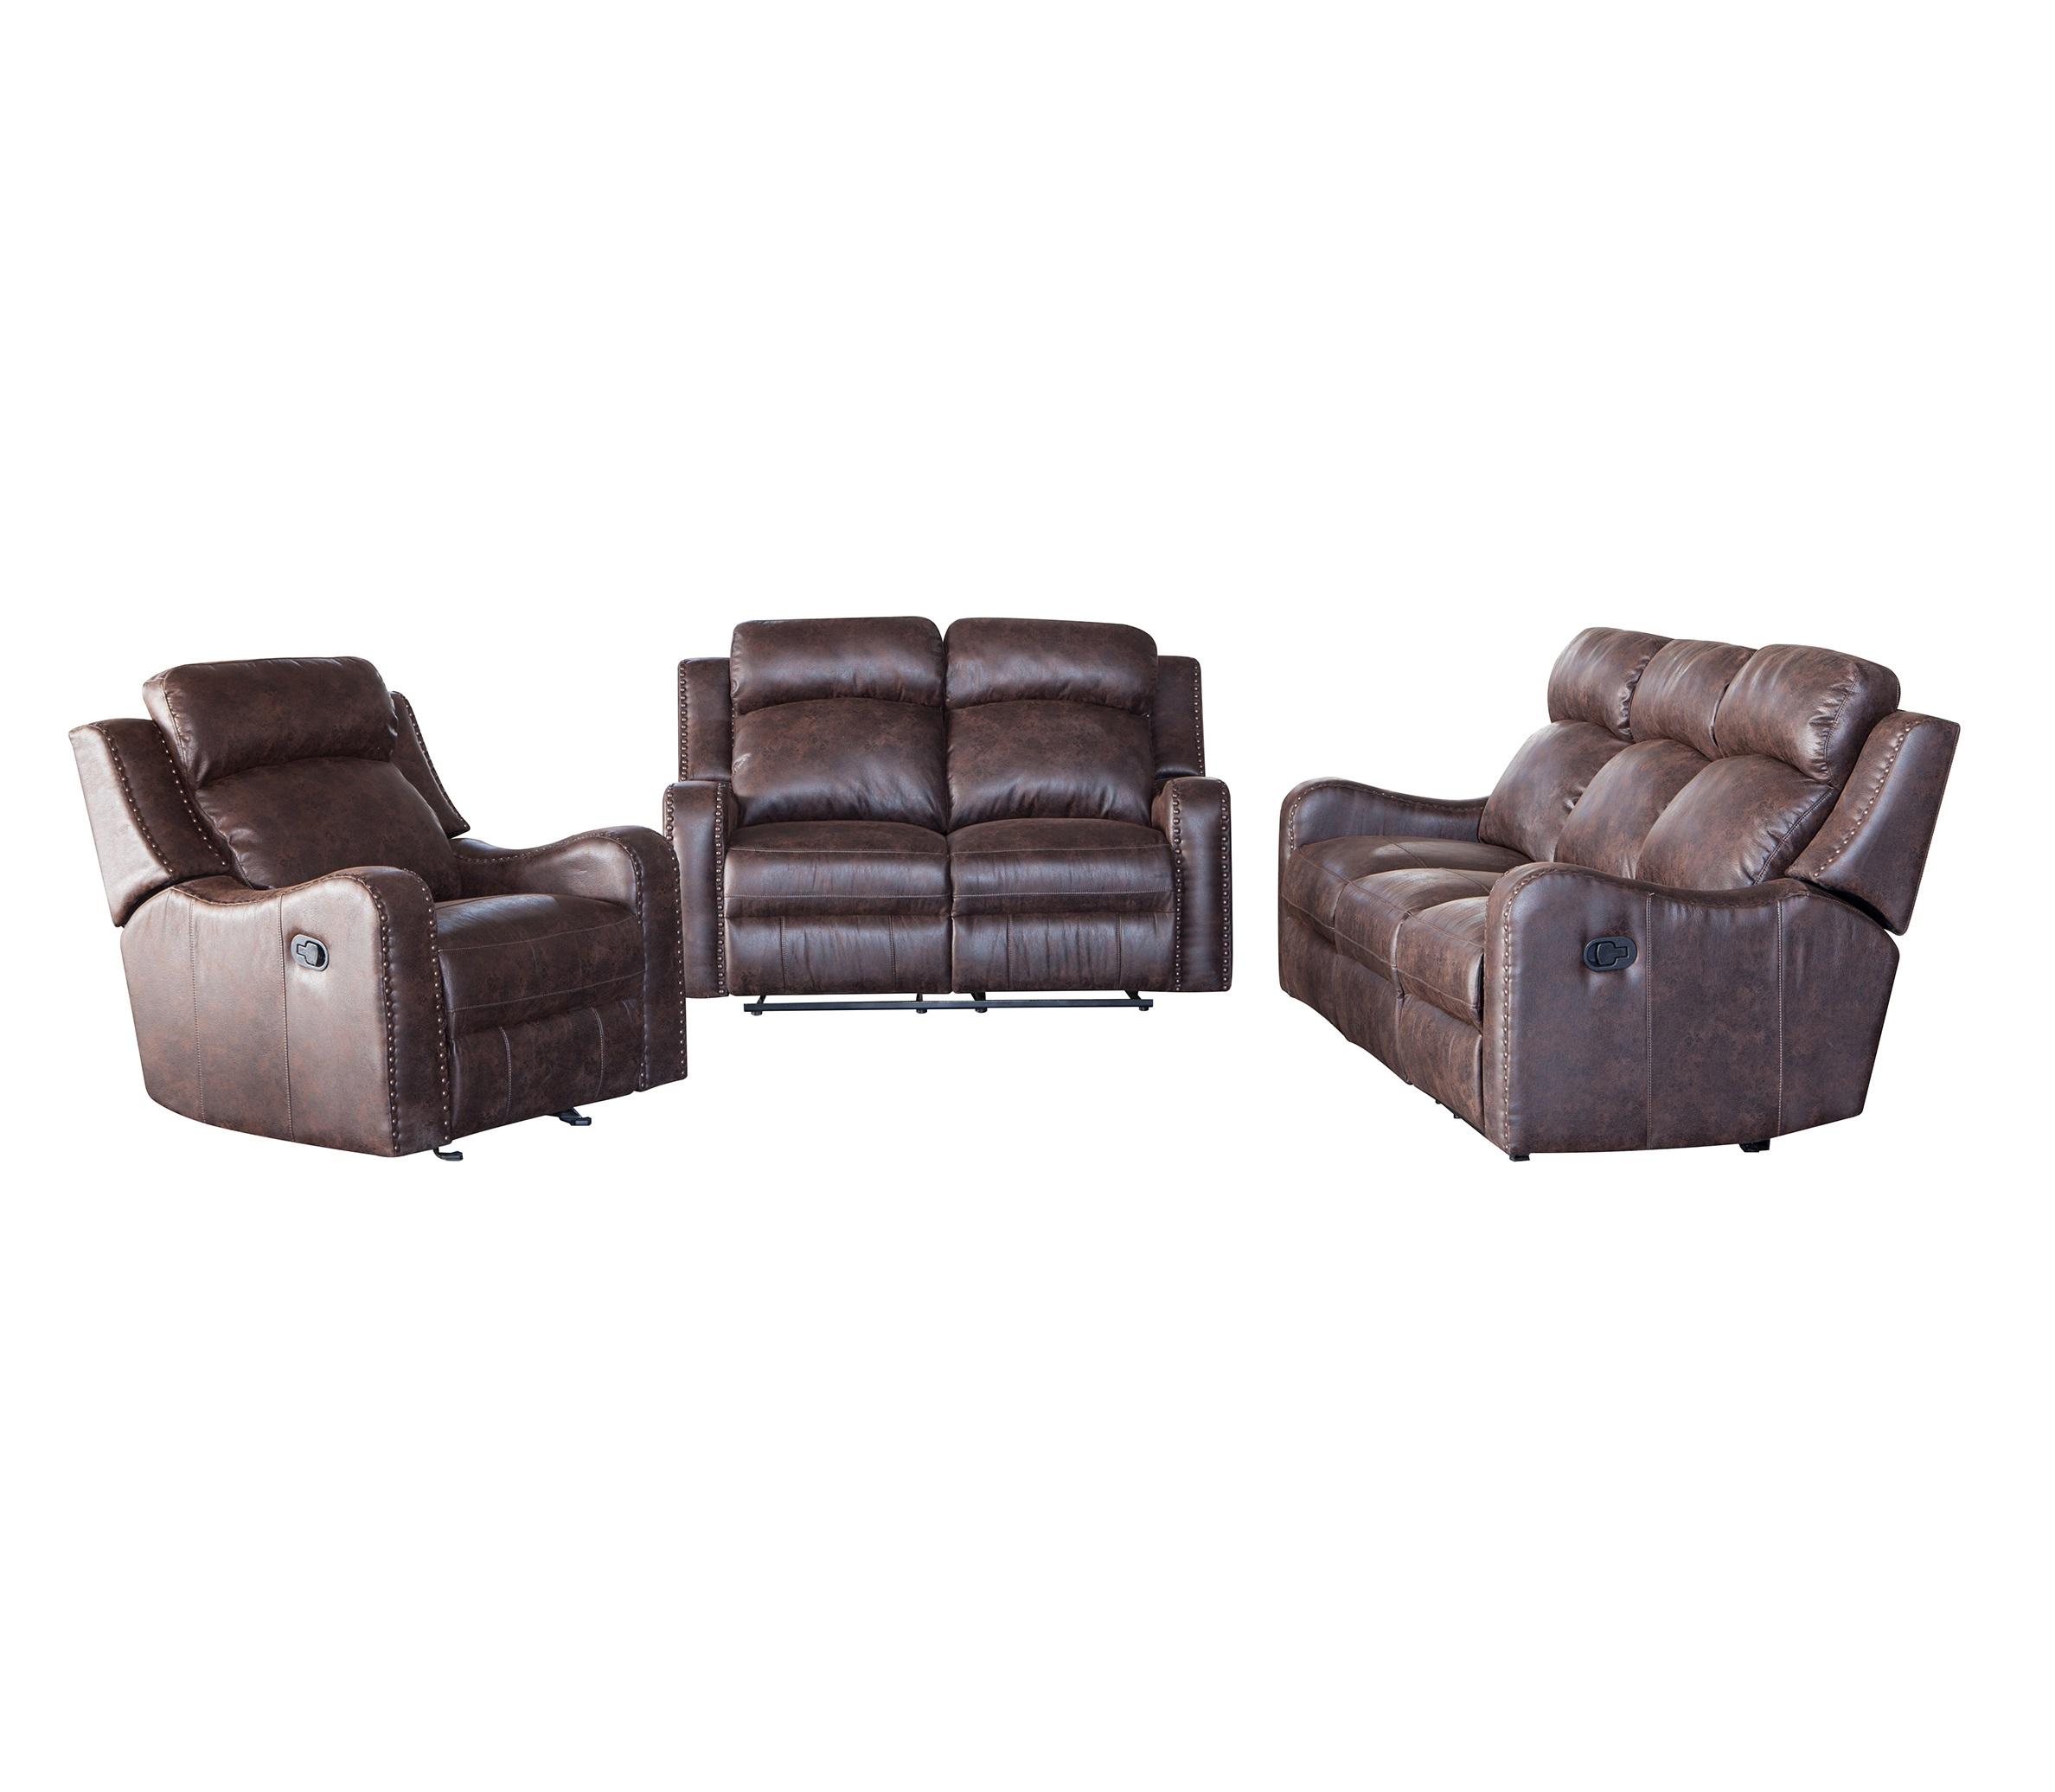 Hot sales living room furniture relax 1 2 3 electric recliner sofa